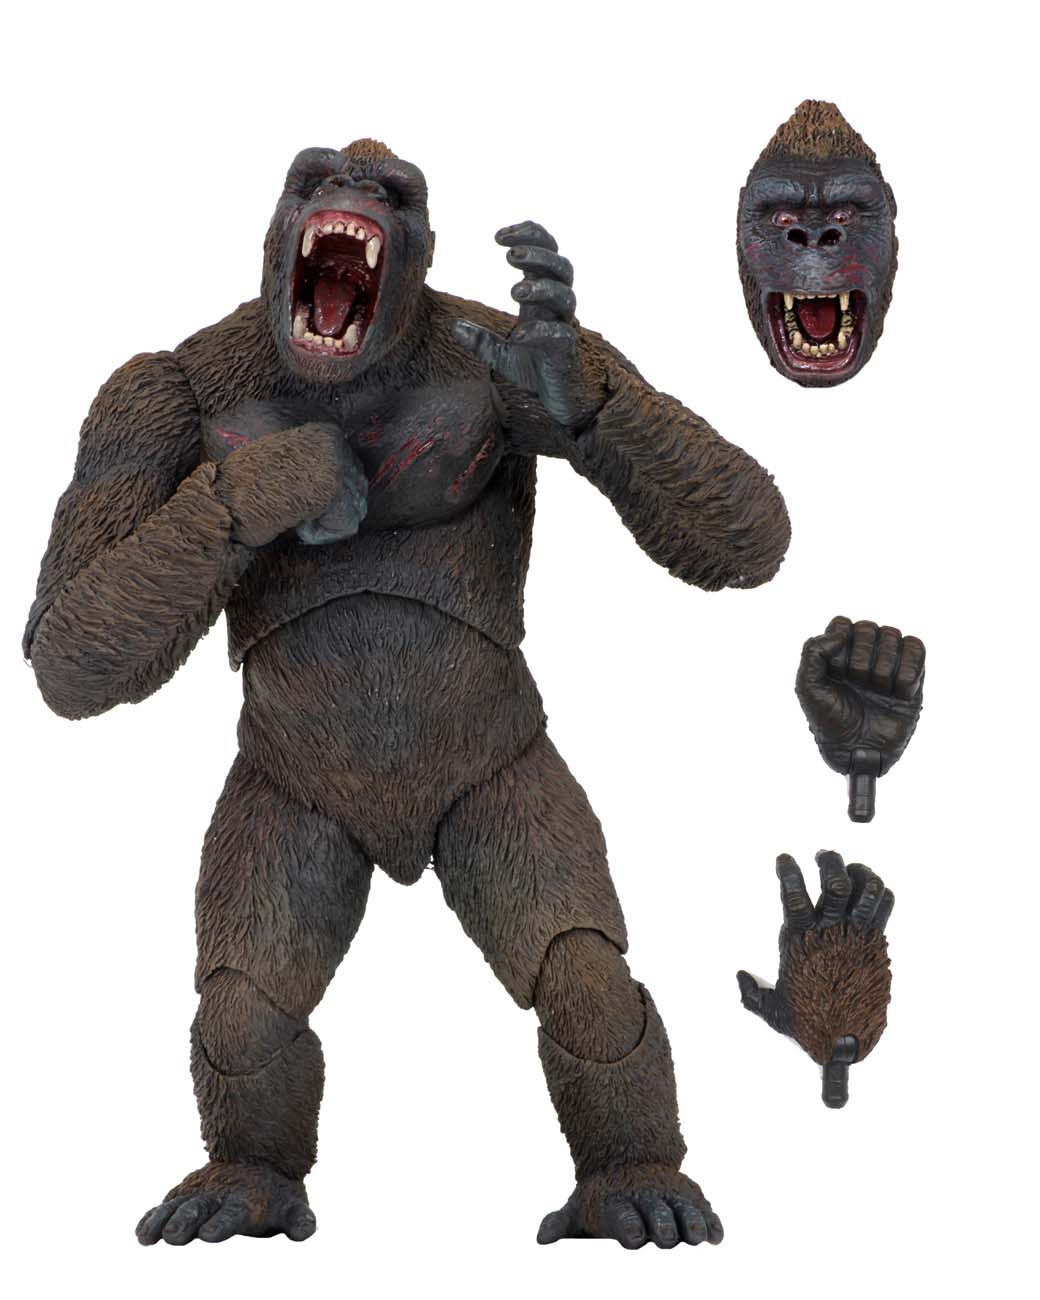 "King Kong 8"" Action Figure by Neca"